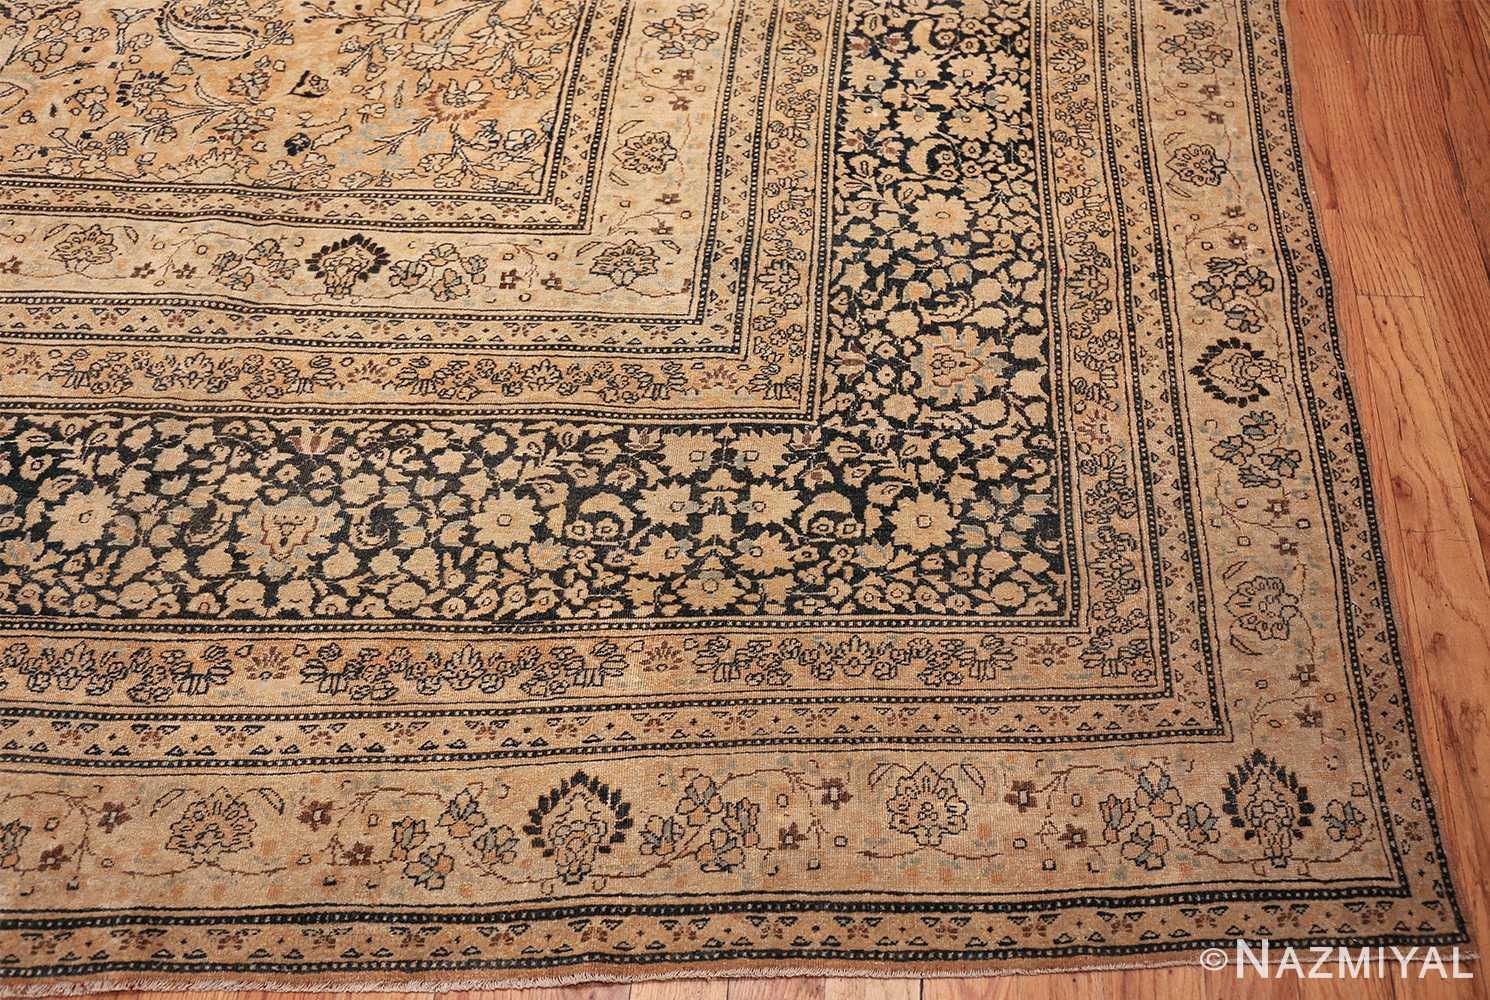 oversize neutral earth tone color persian khorassan rug 49427 part Nazmiyal